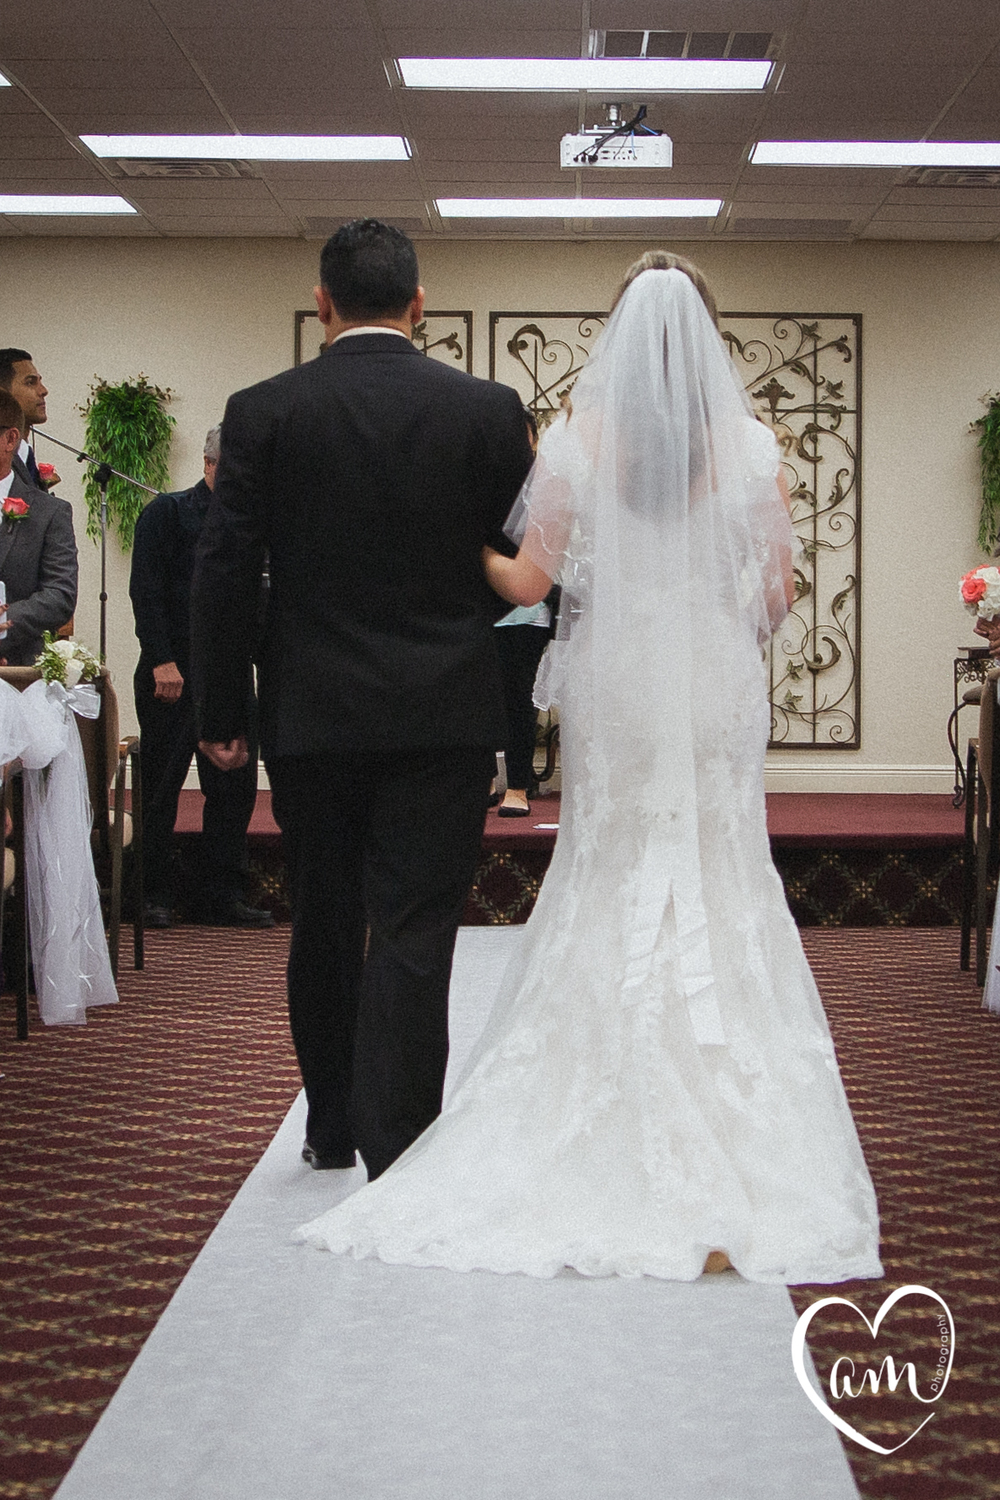 Bride's train as she walks up the aisle.